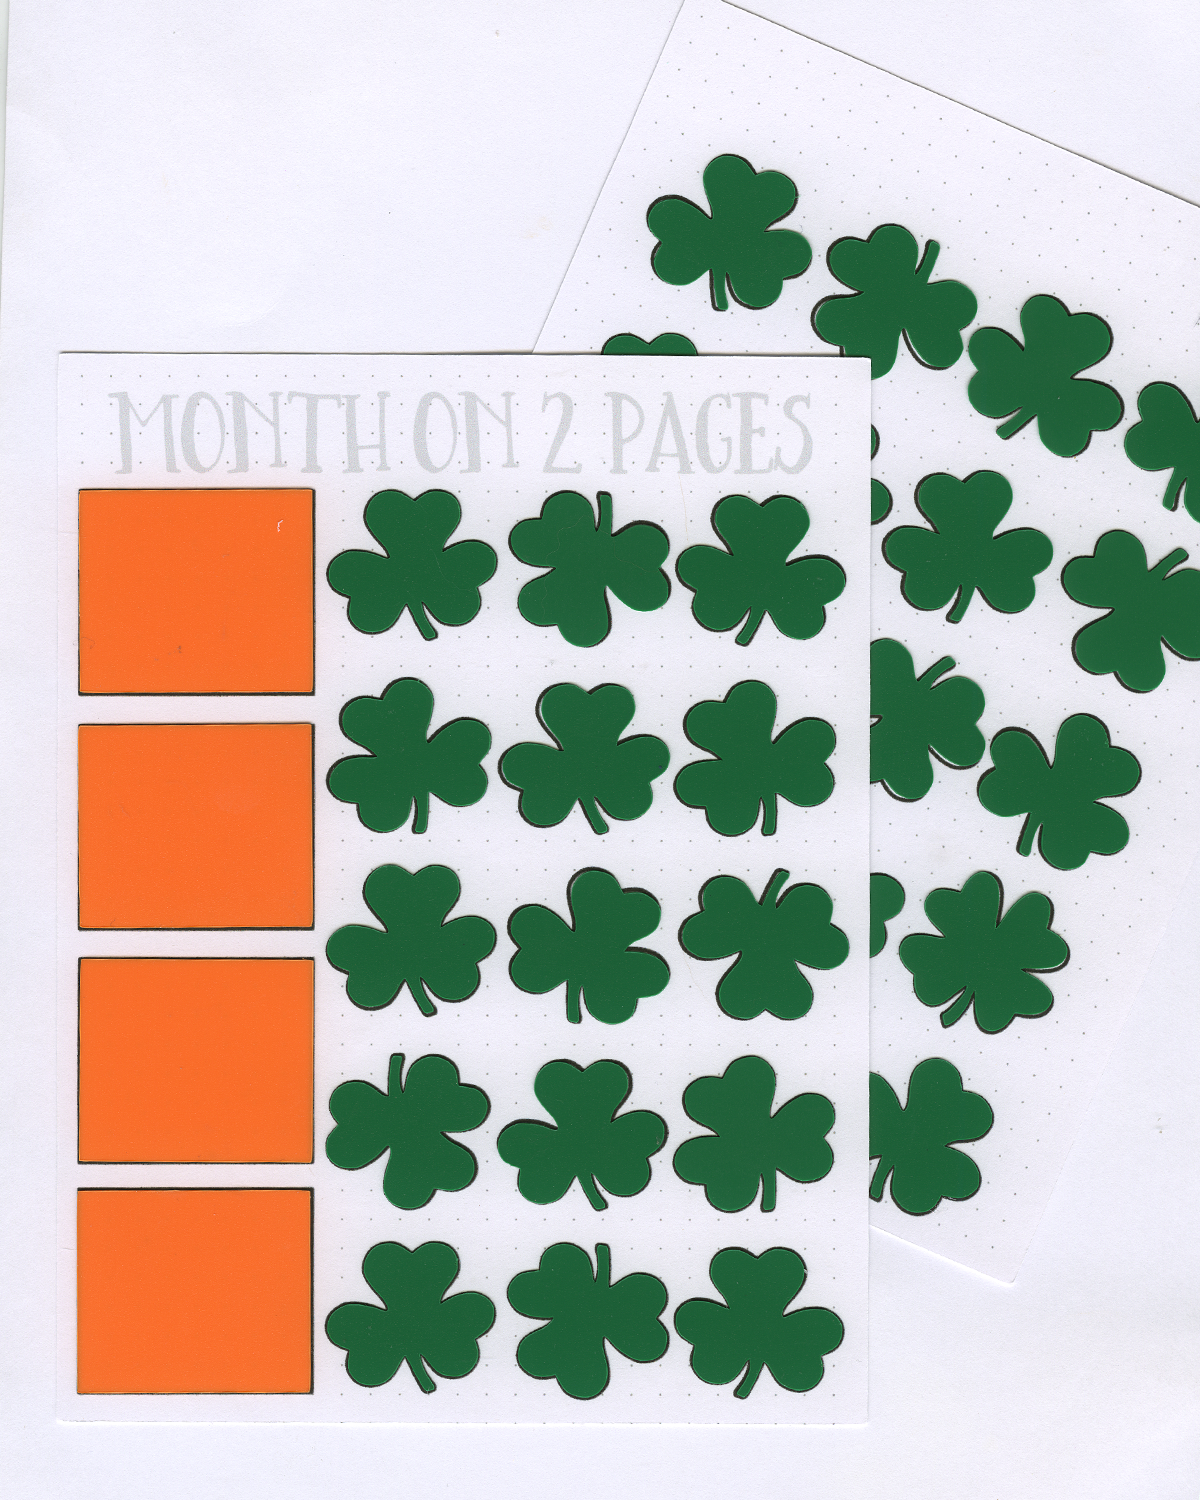 SHAMROCK Month on 2 Pages STENCIL MASK